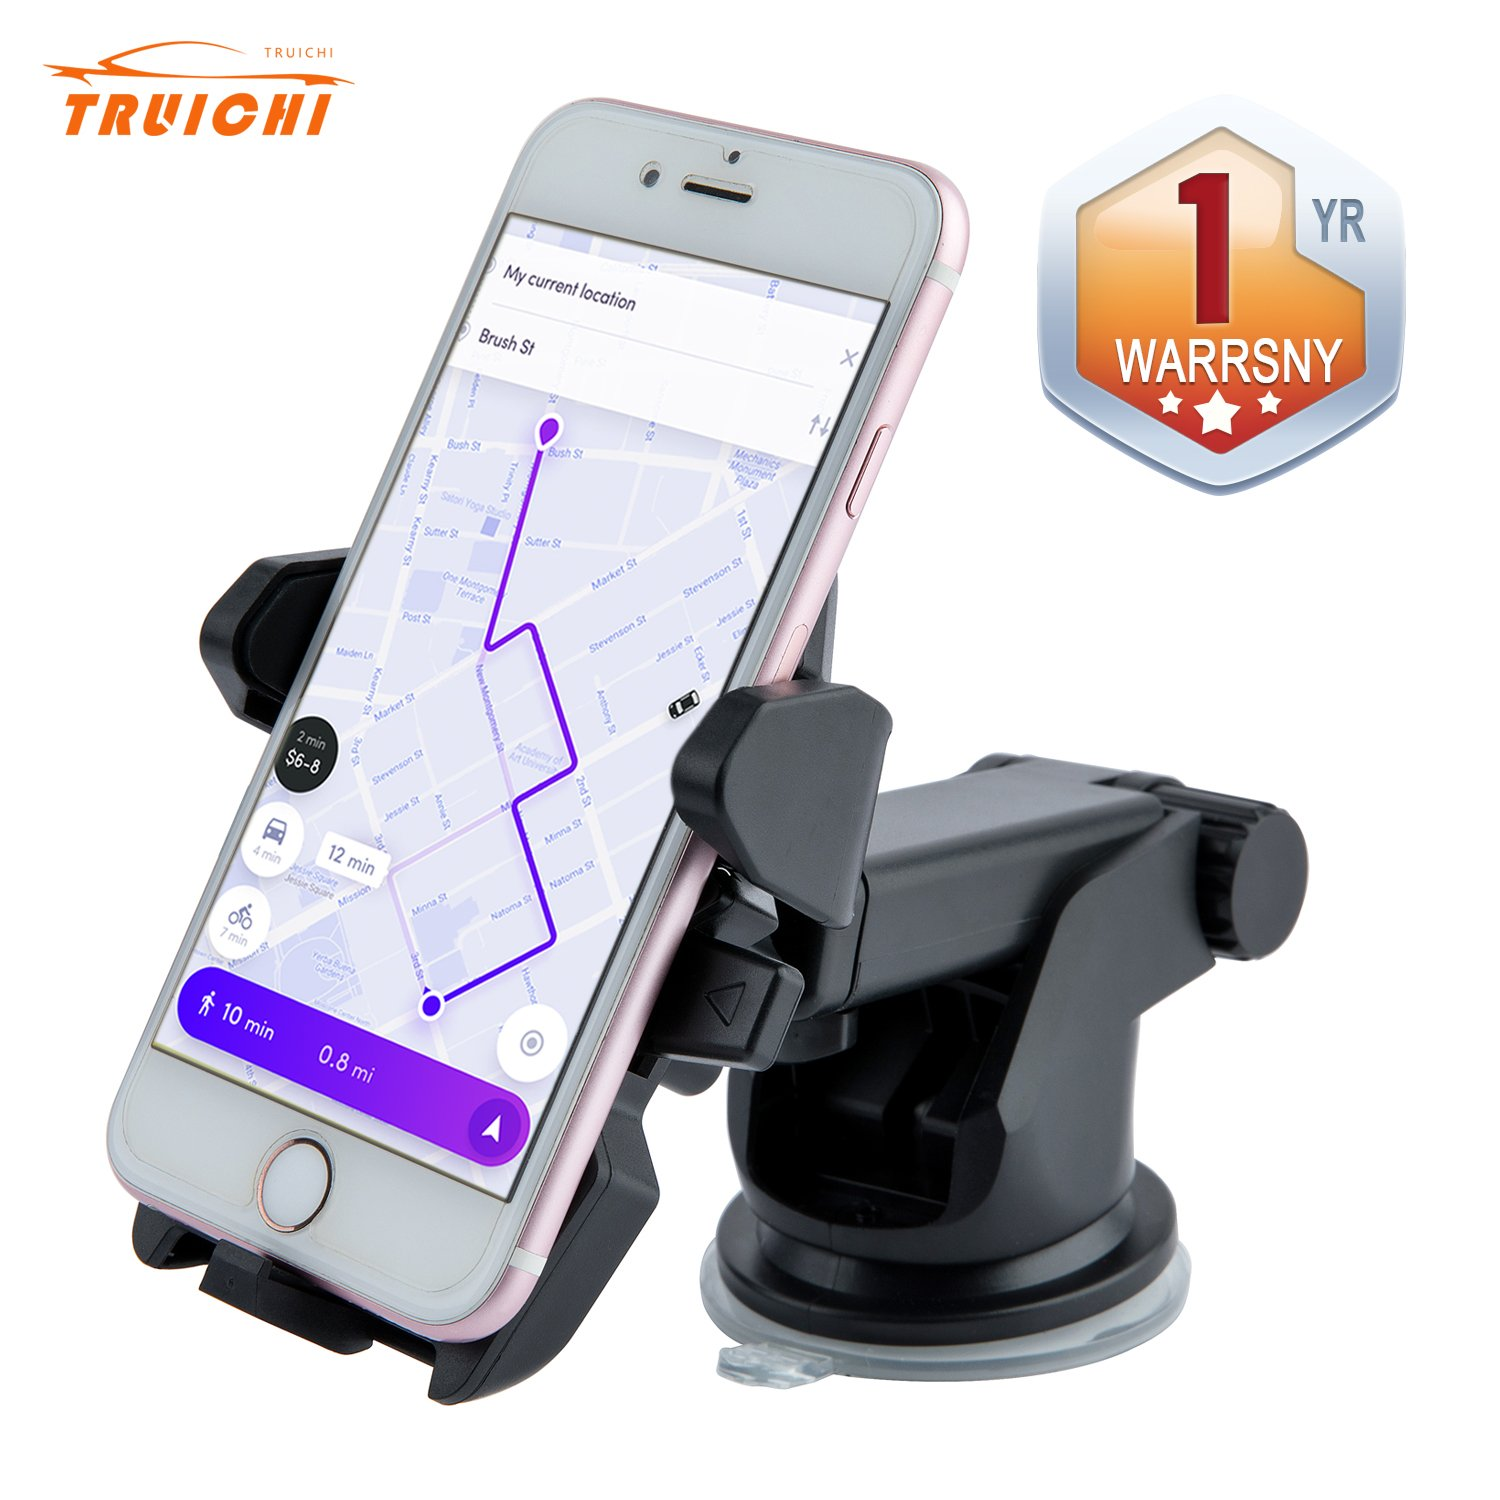 Car Phone Mount Holder Broader View Cell Phone Bracket Stable Windshield Dashboard Phone Stand For IOS Series/Android Series